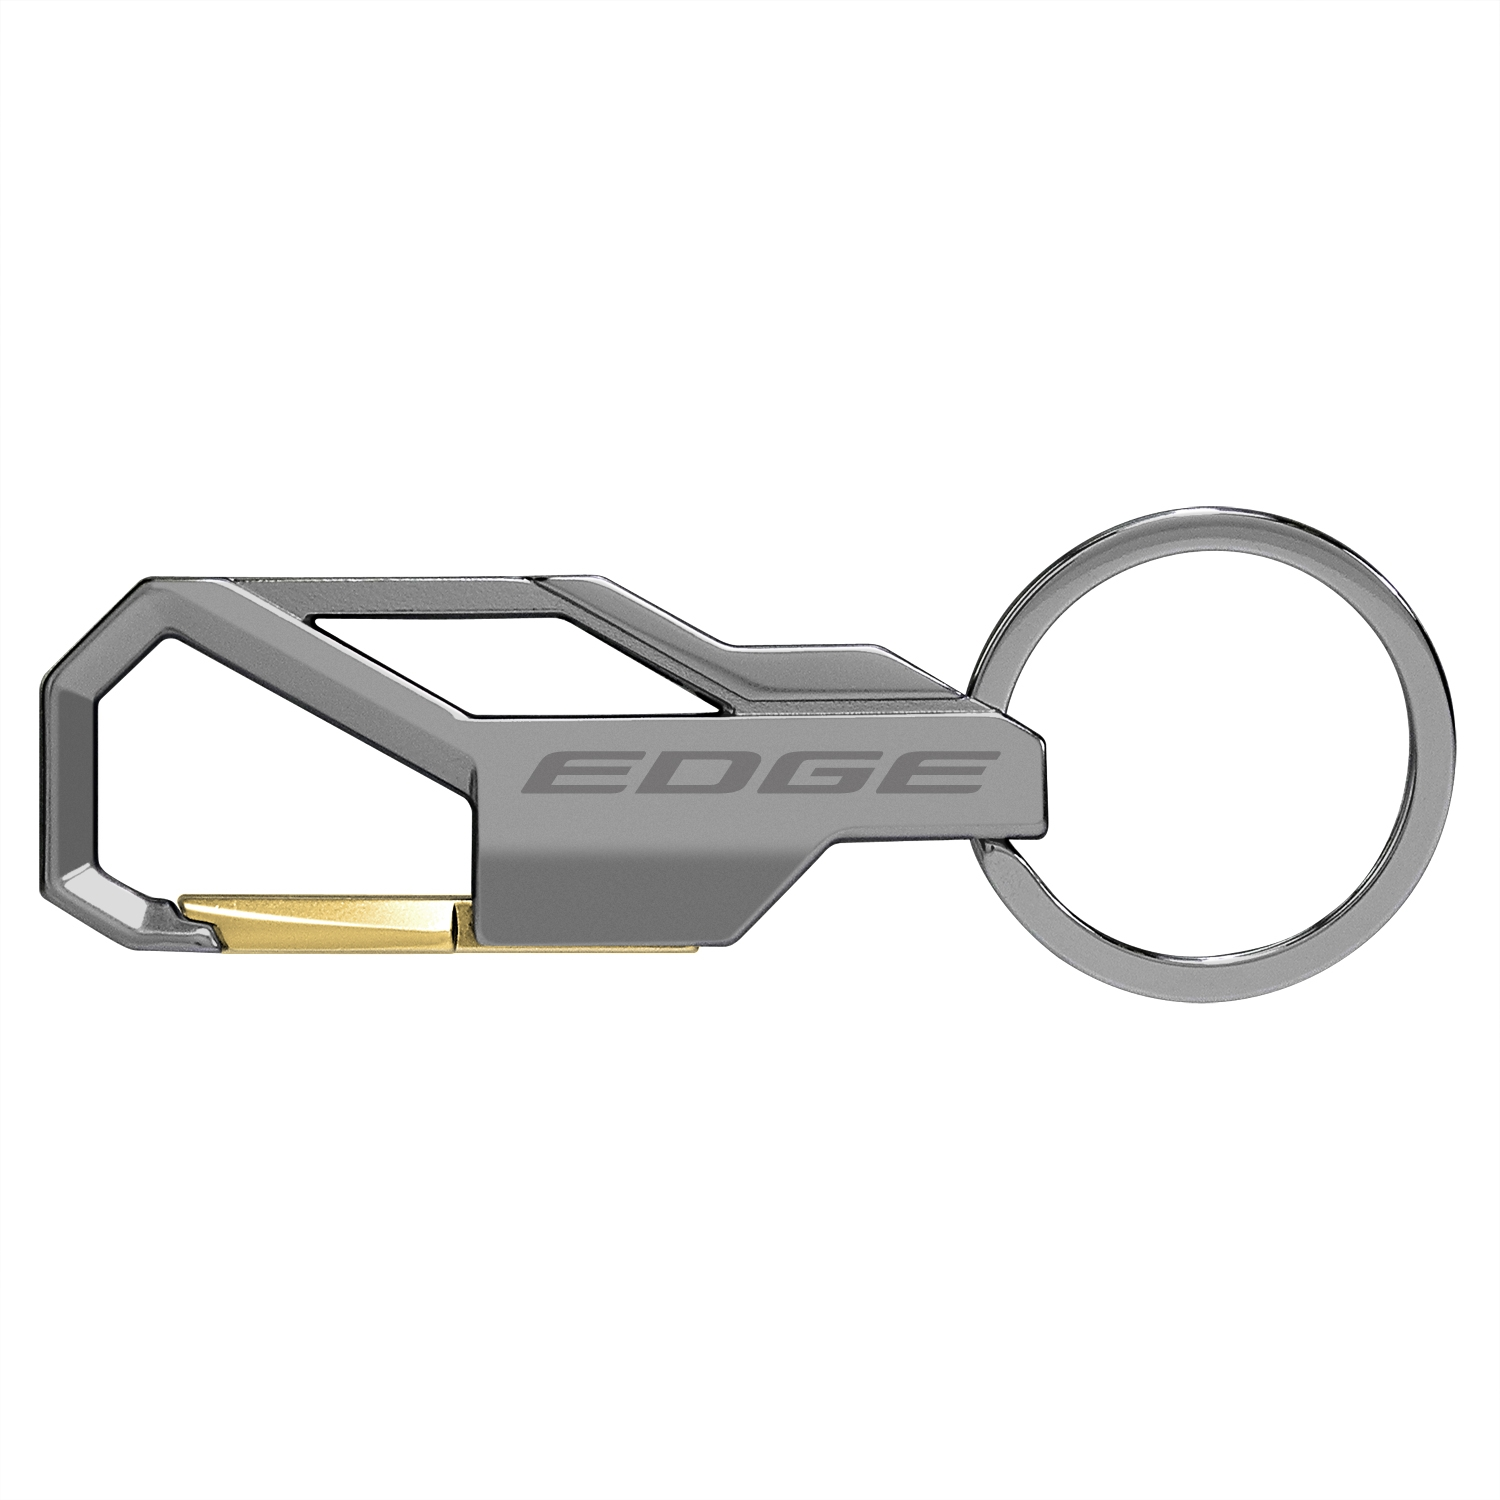 Ford Edge Gunmetal Gray Snap Hook Metal Key Chain